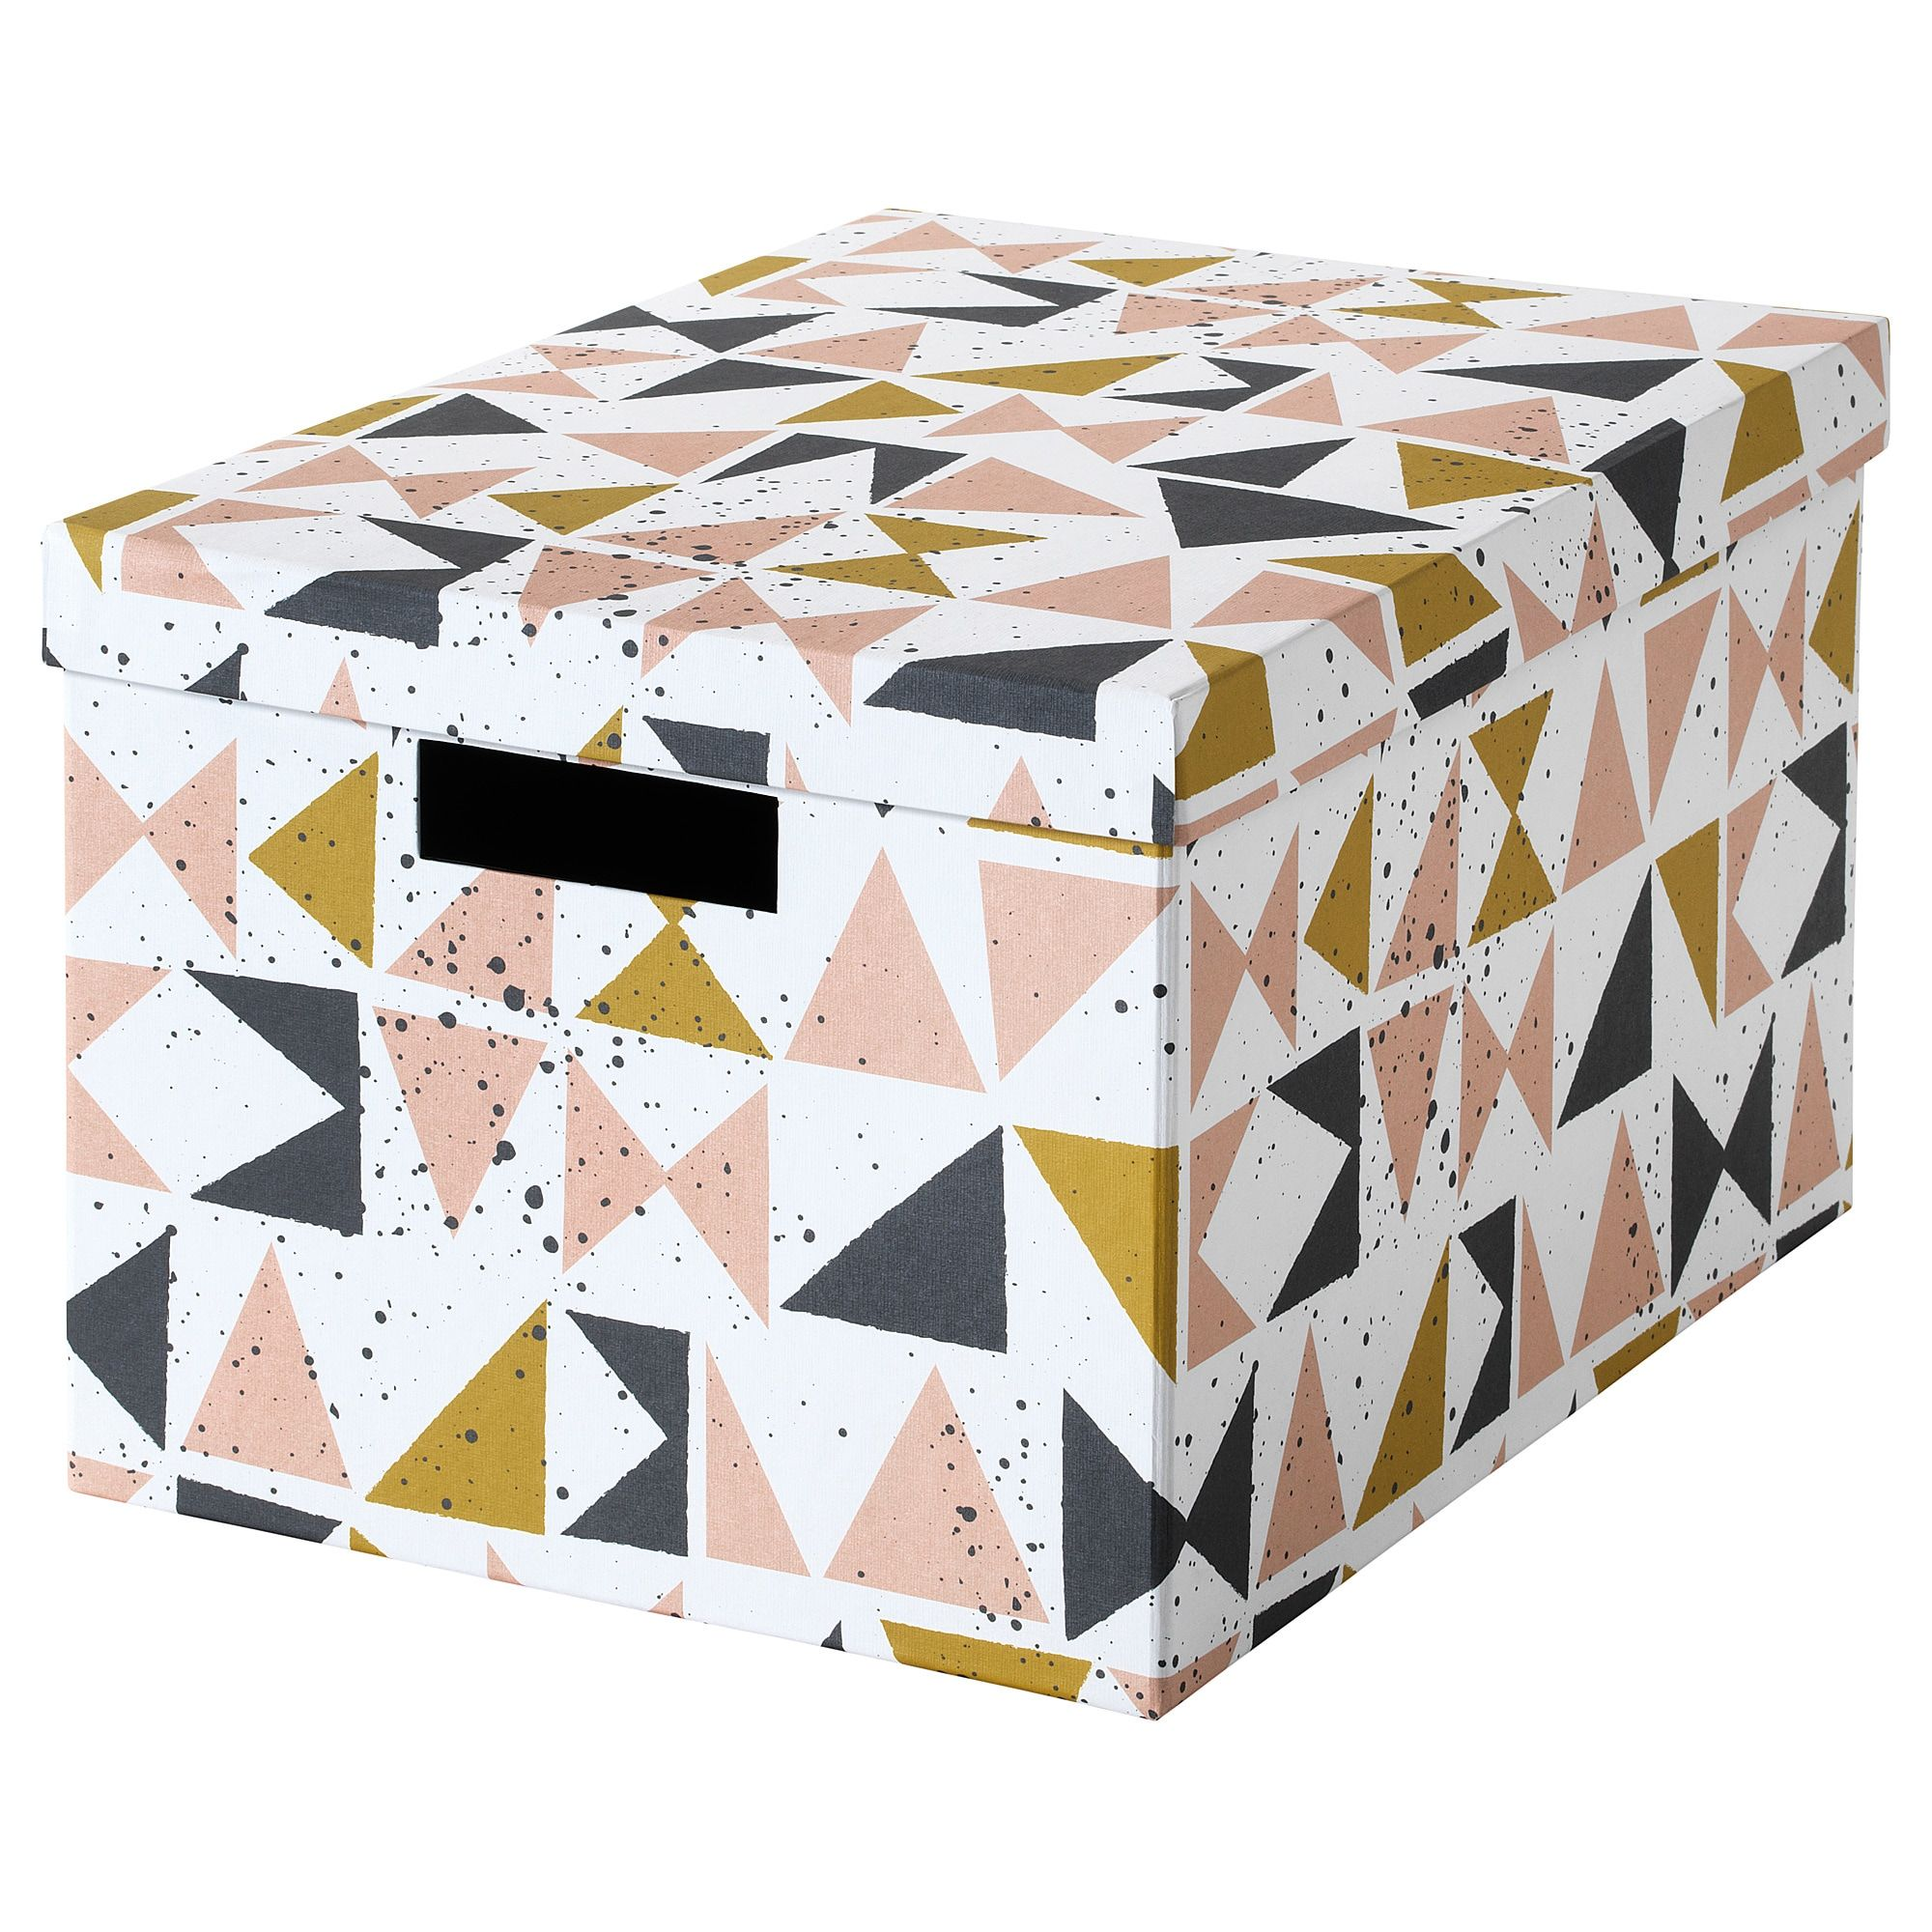 US Furniture and Home Furnishings Storage boxes with